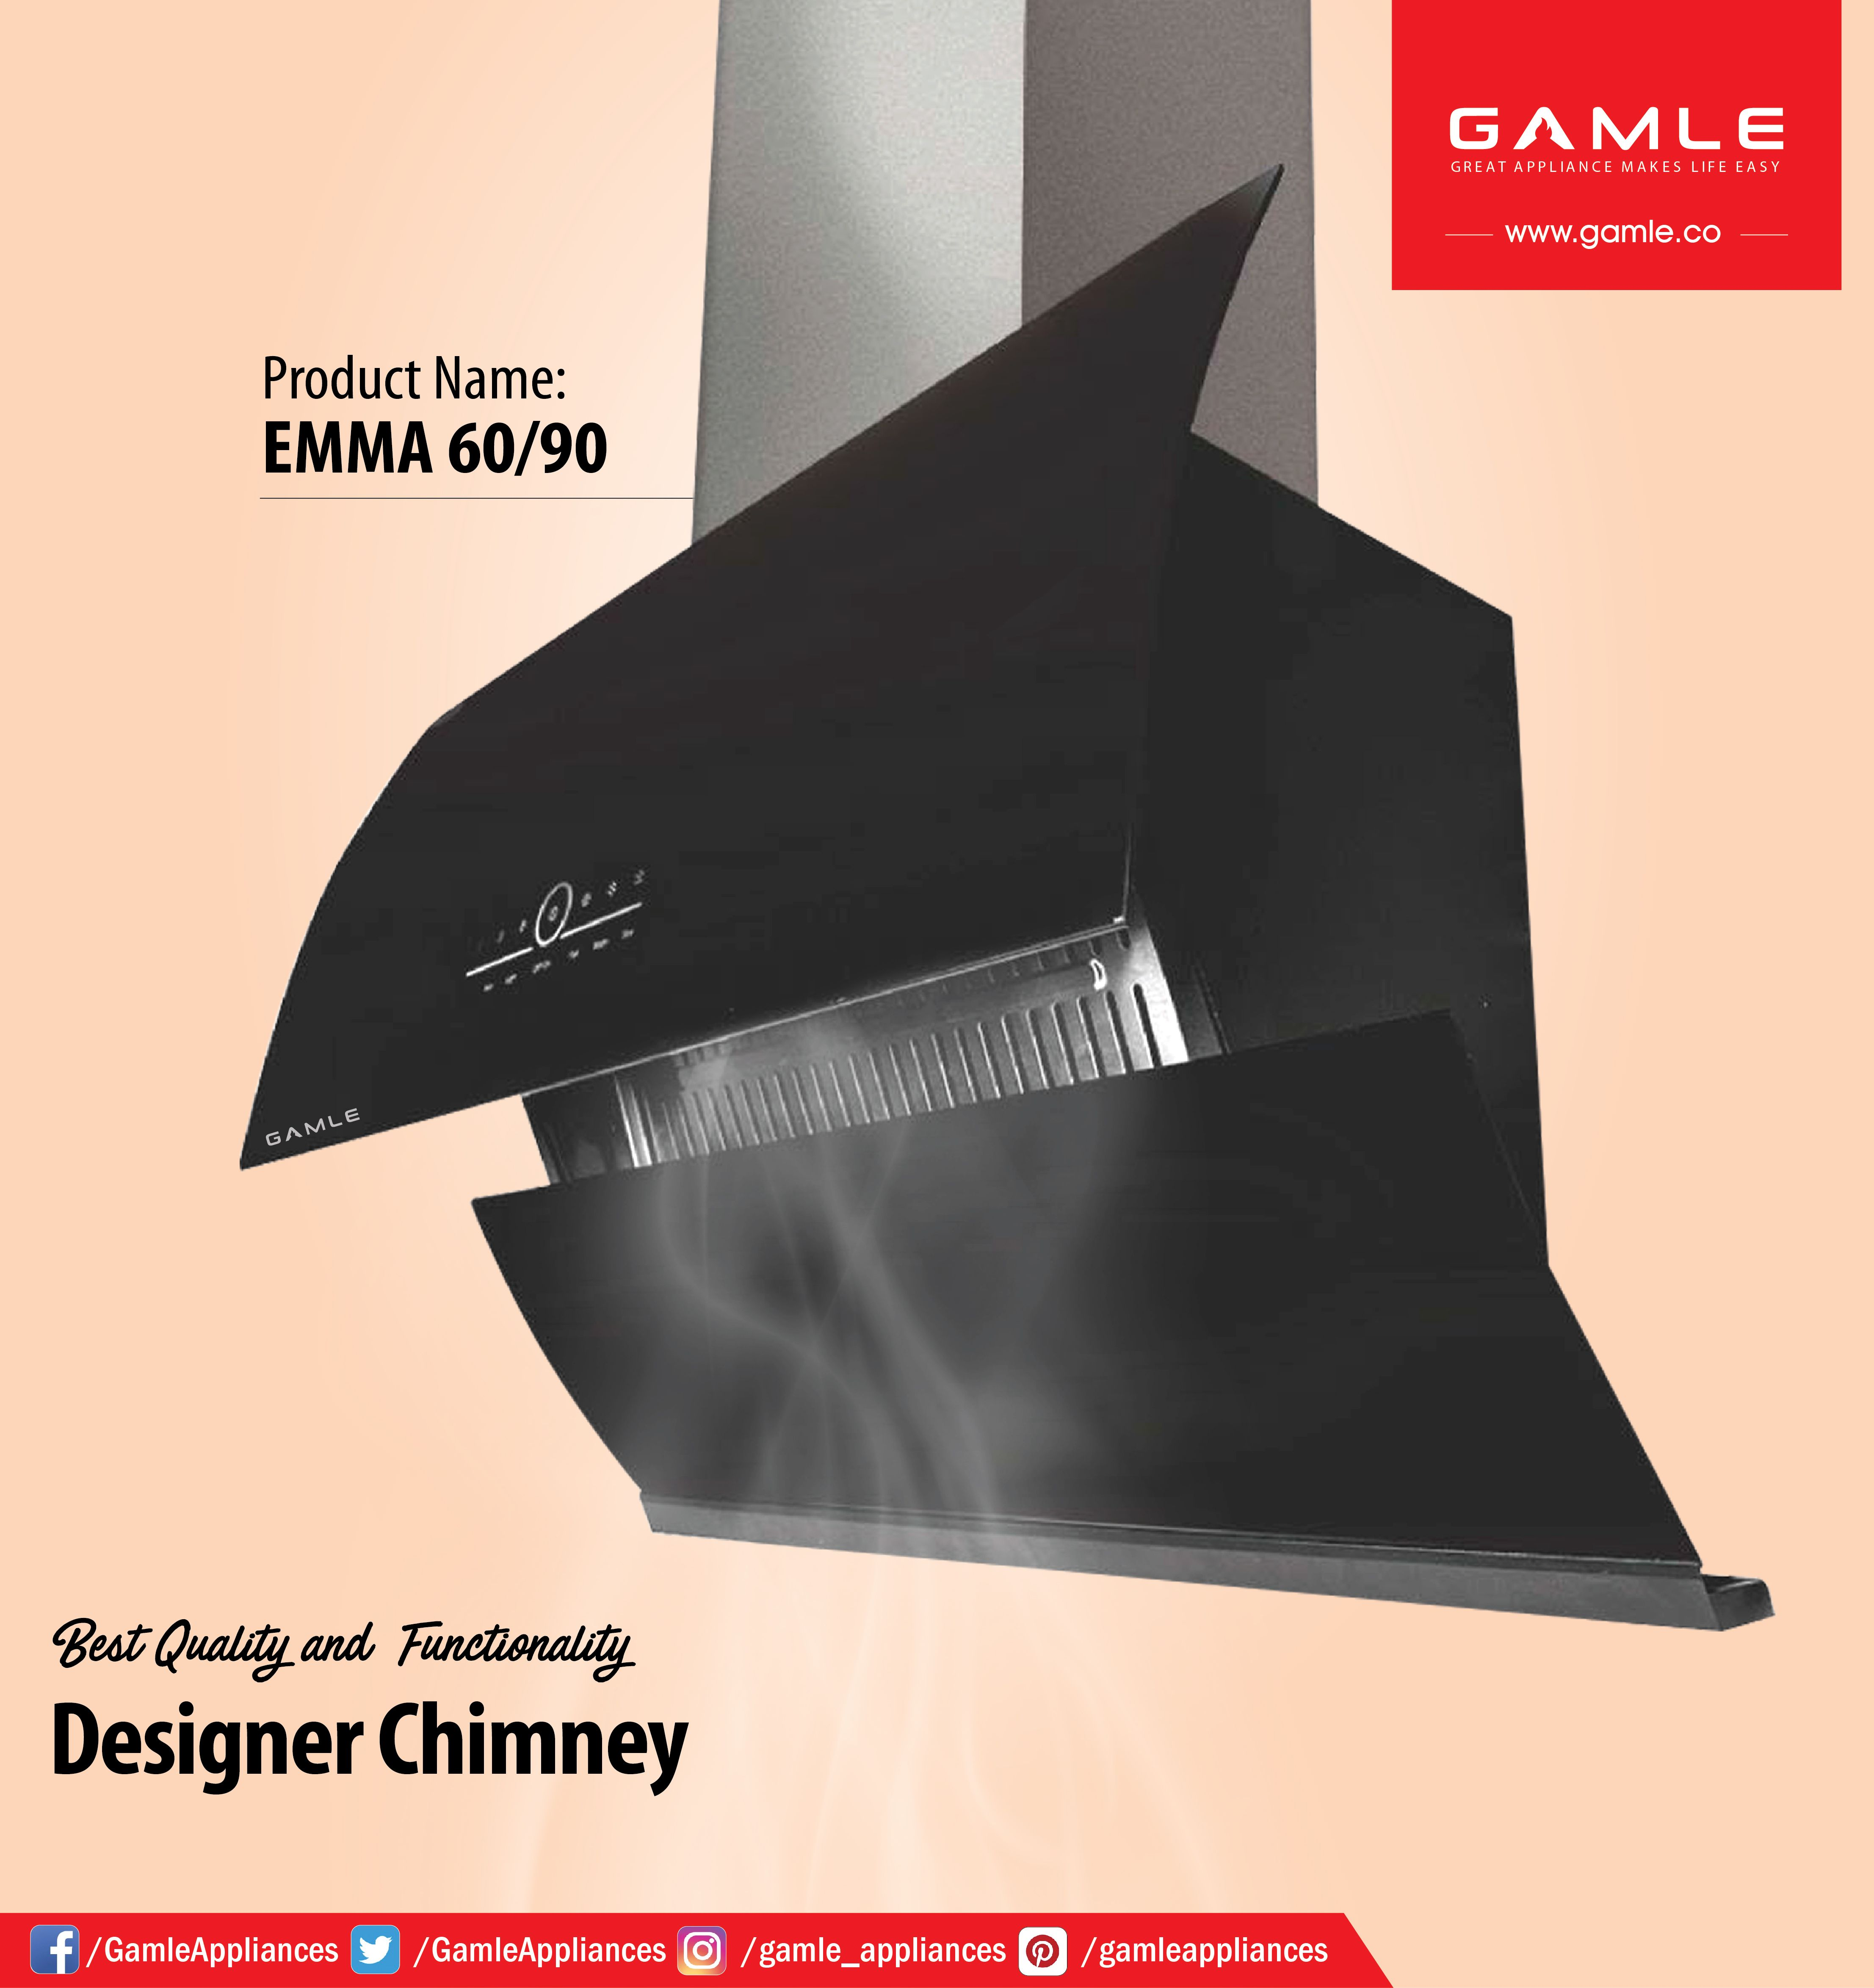 Best #Quality and #Functionality #DesignerChimney #Gamle World Class ...